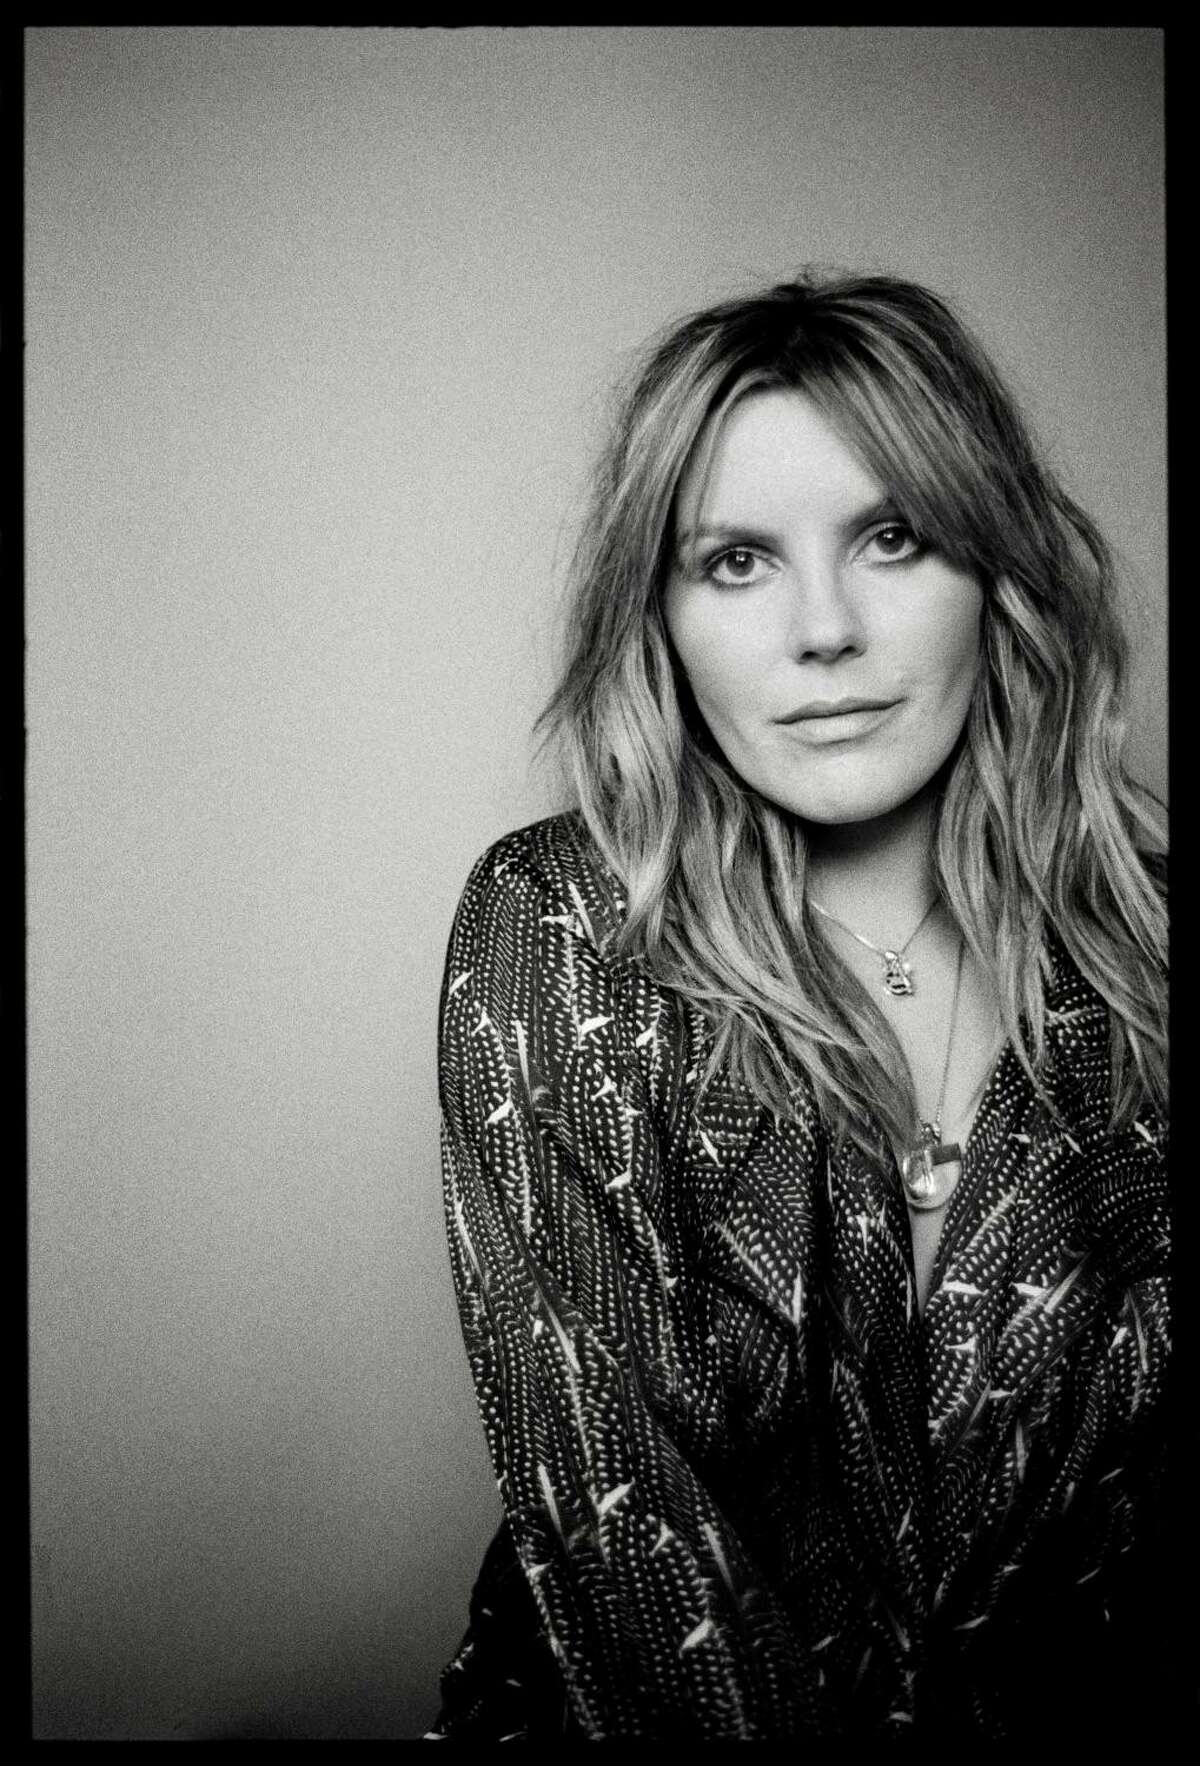 Grace Potter is scheduled to perform two outdoor shows Aug. 15 at the Ridgefield Playhouse.